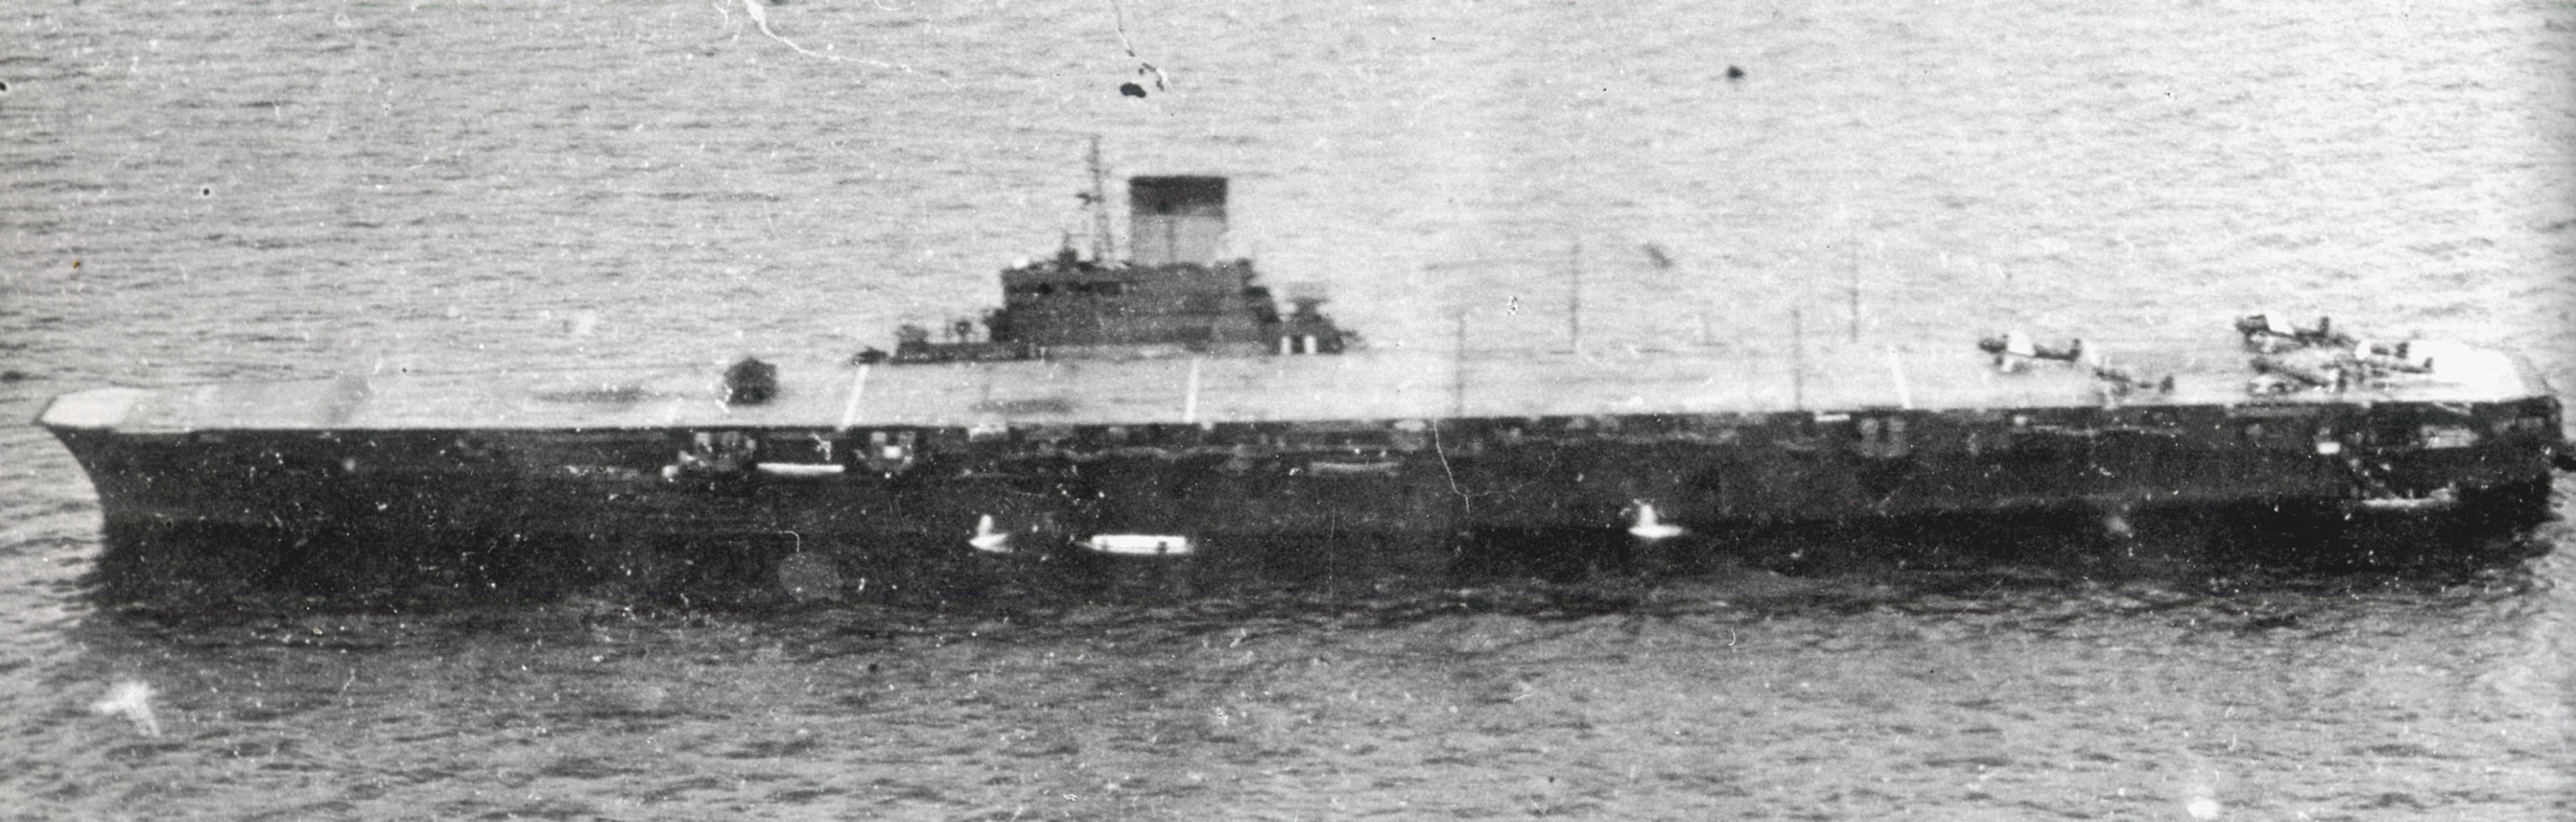 Japanese aircraft carrier Taihou.jpg